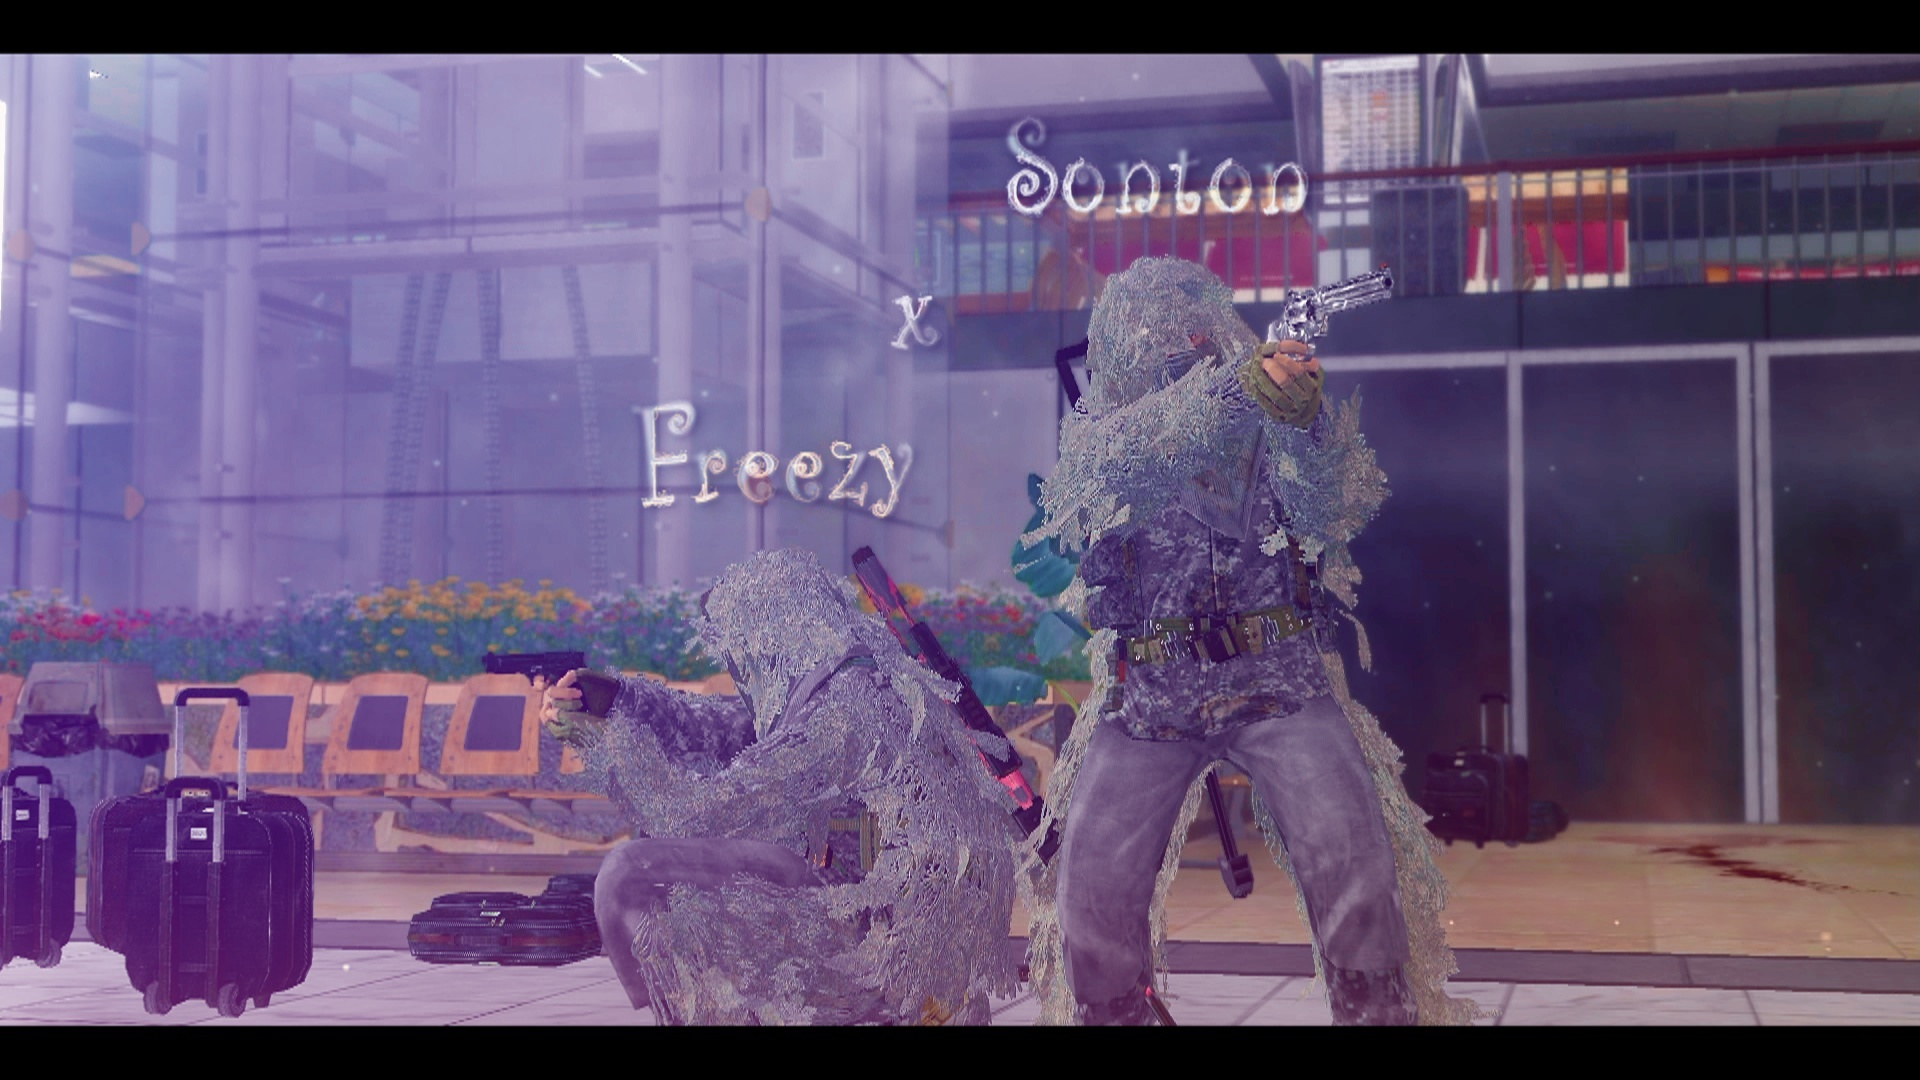 Obey Freezy x Red Sonton (Color Correction)